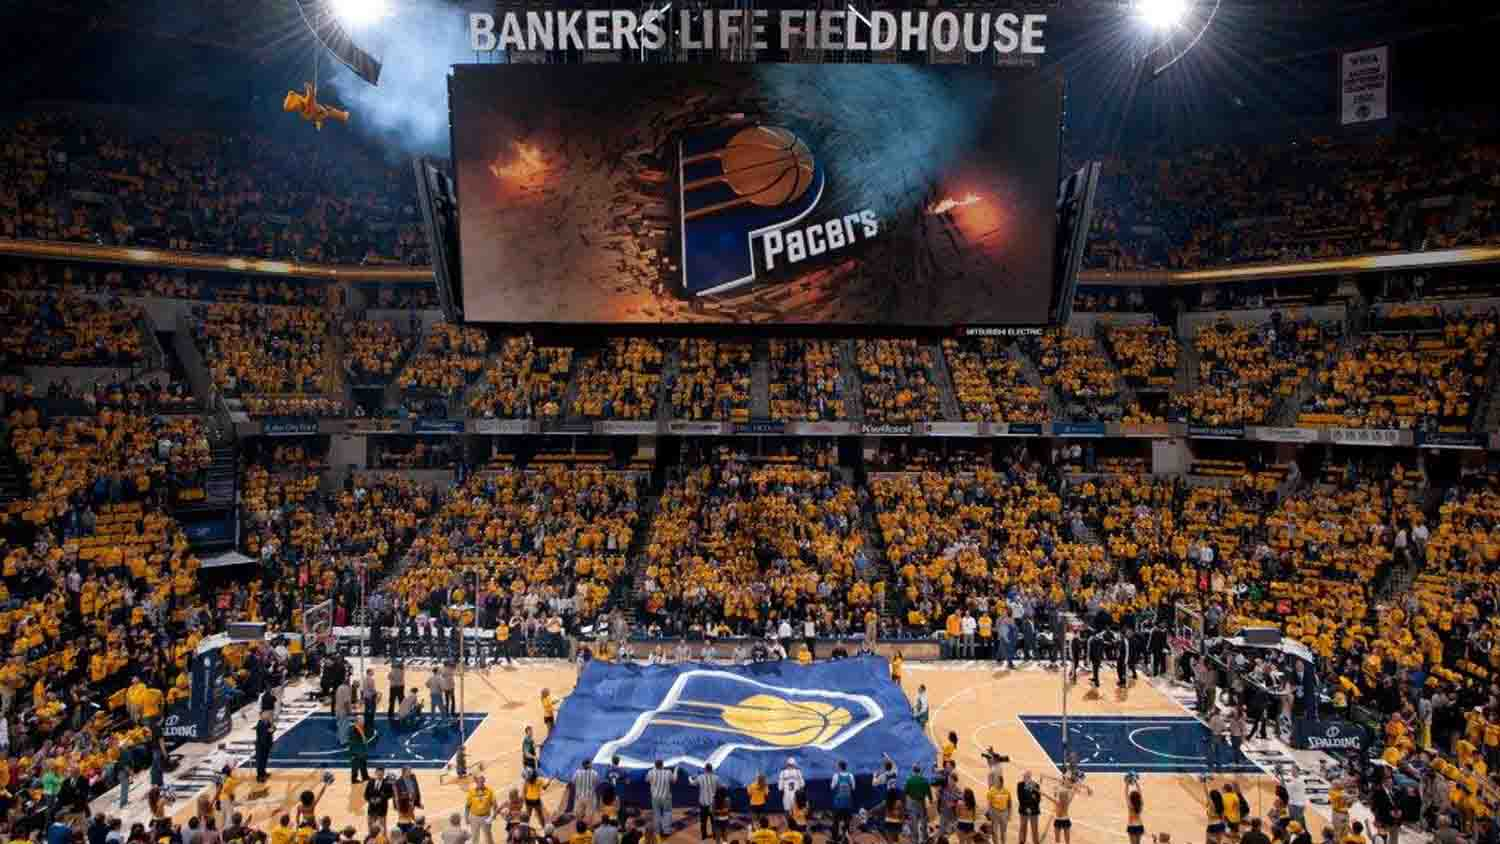 Pacers Sports and Entertainment